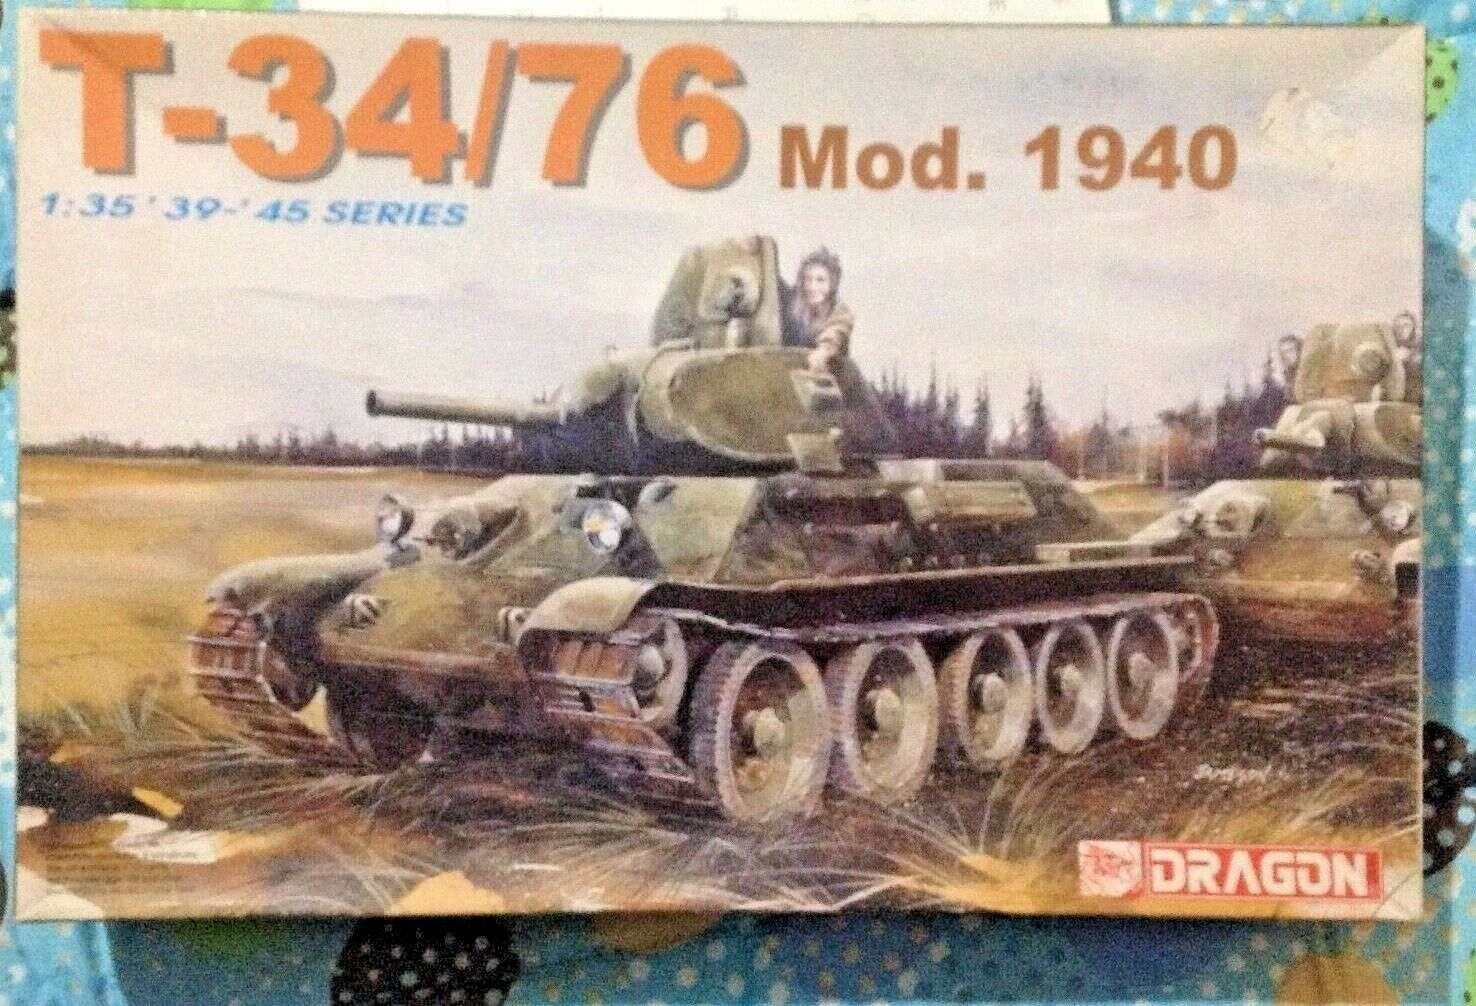 DRAGON 6092 135 T3476 MOD.1940 VERY RARENO TAMIYA TASCA BRONCO RESIN KIT AFV